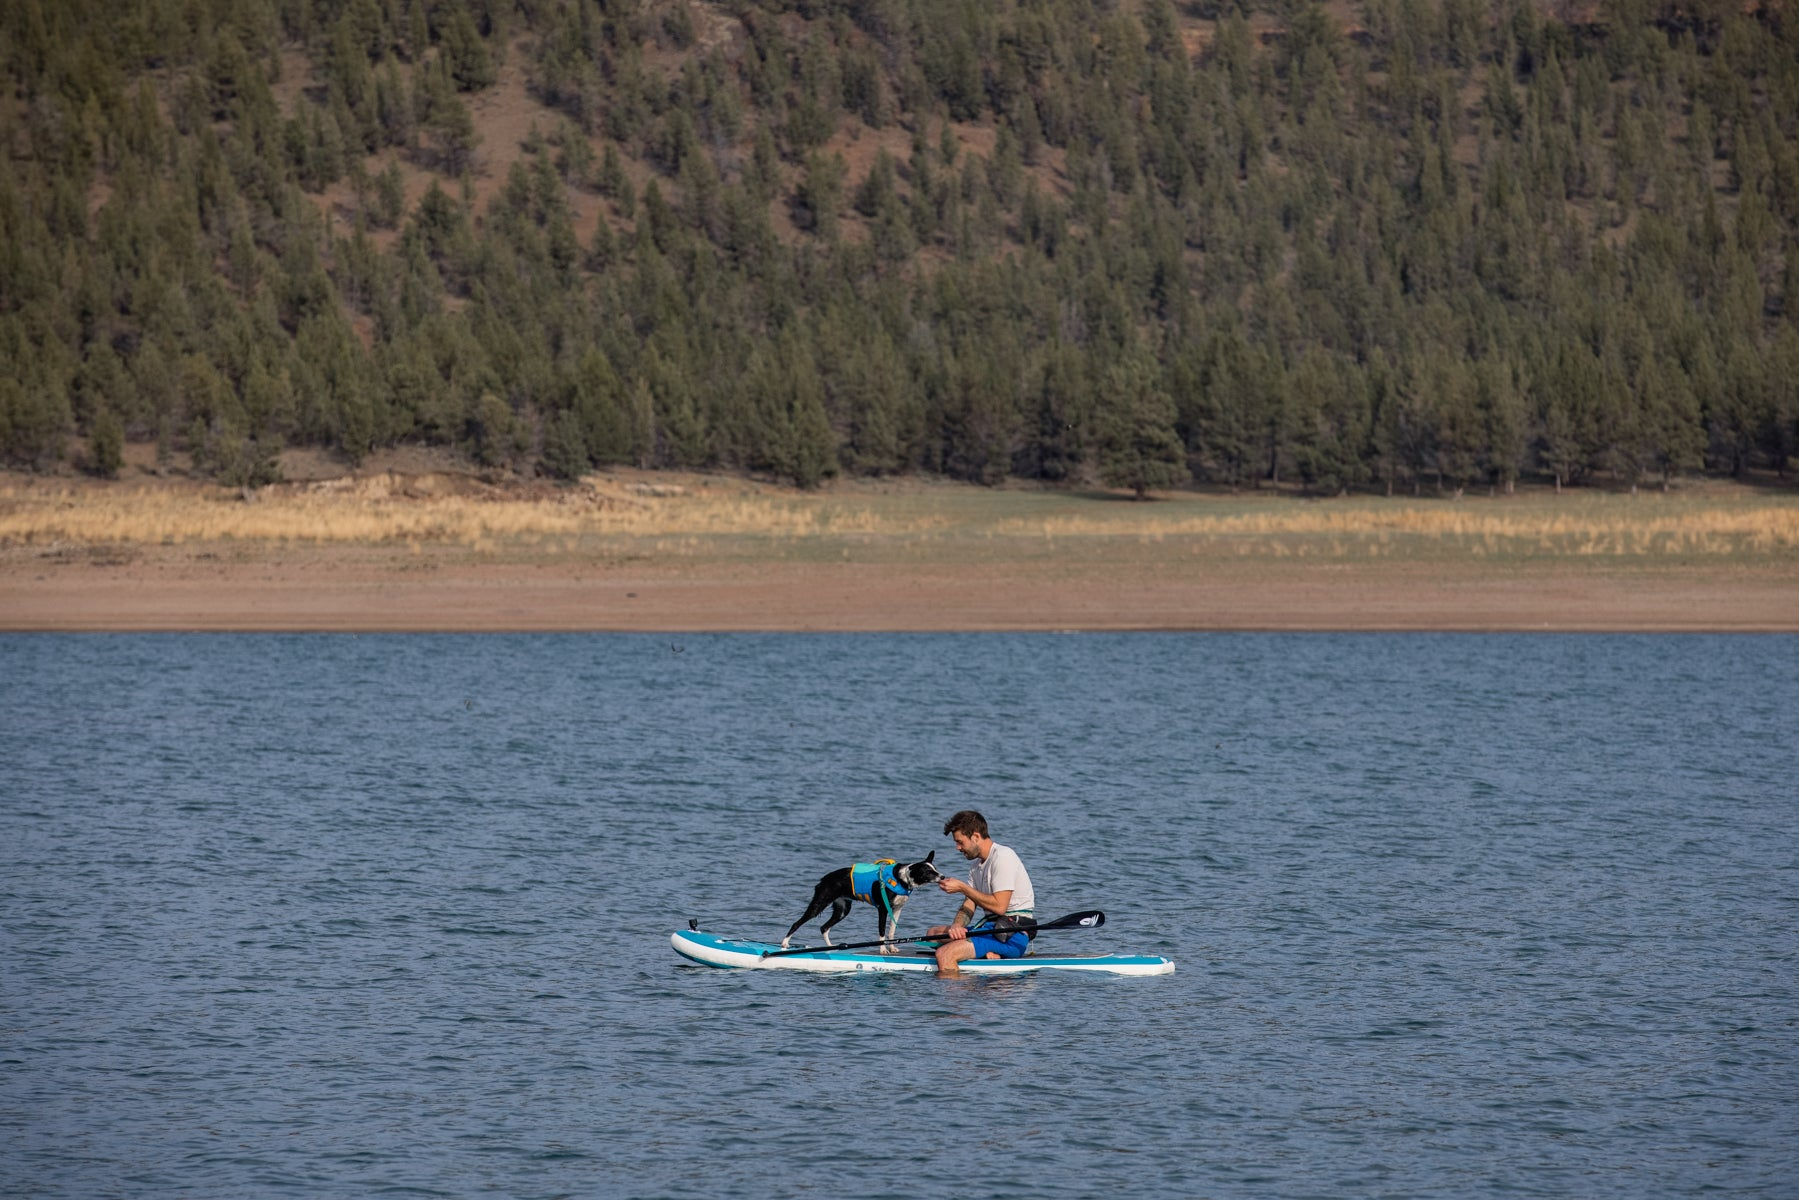 Human and Dog sitting on a paddleboard in a lake